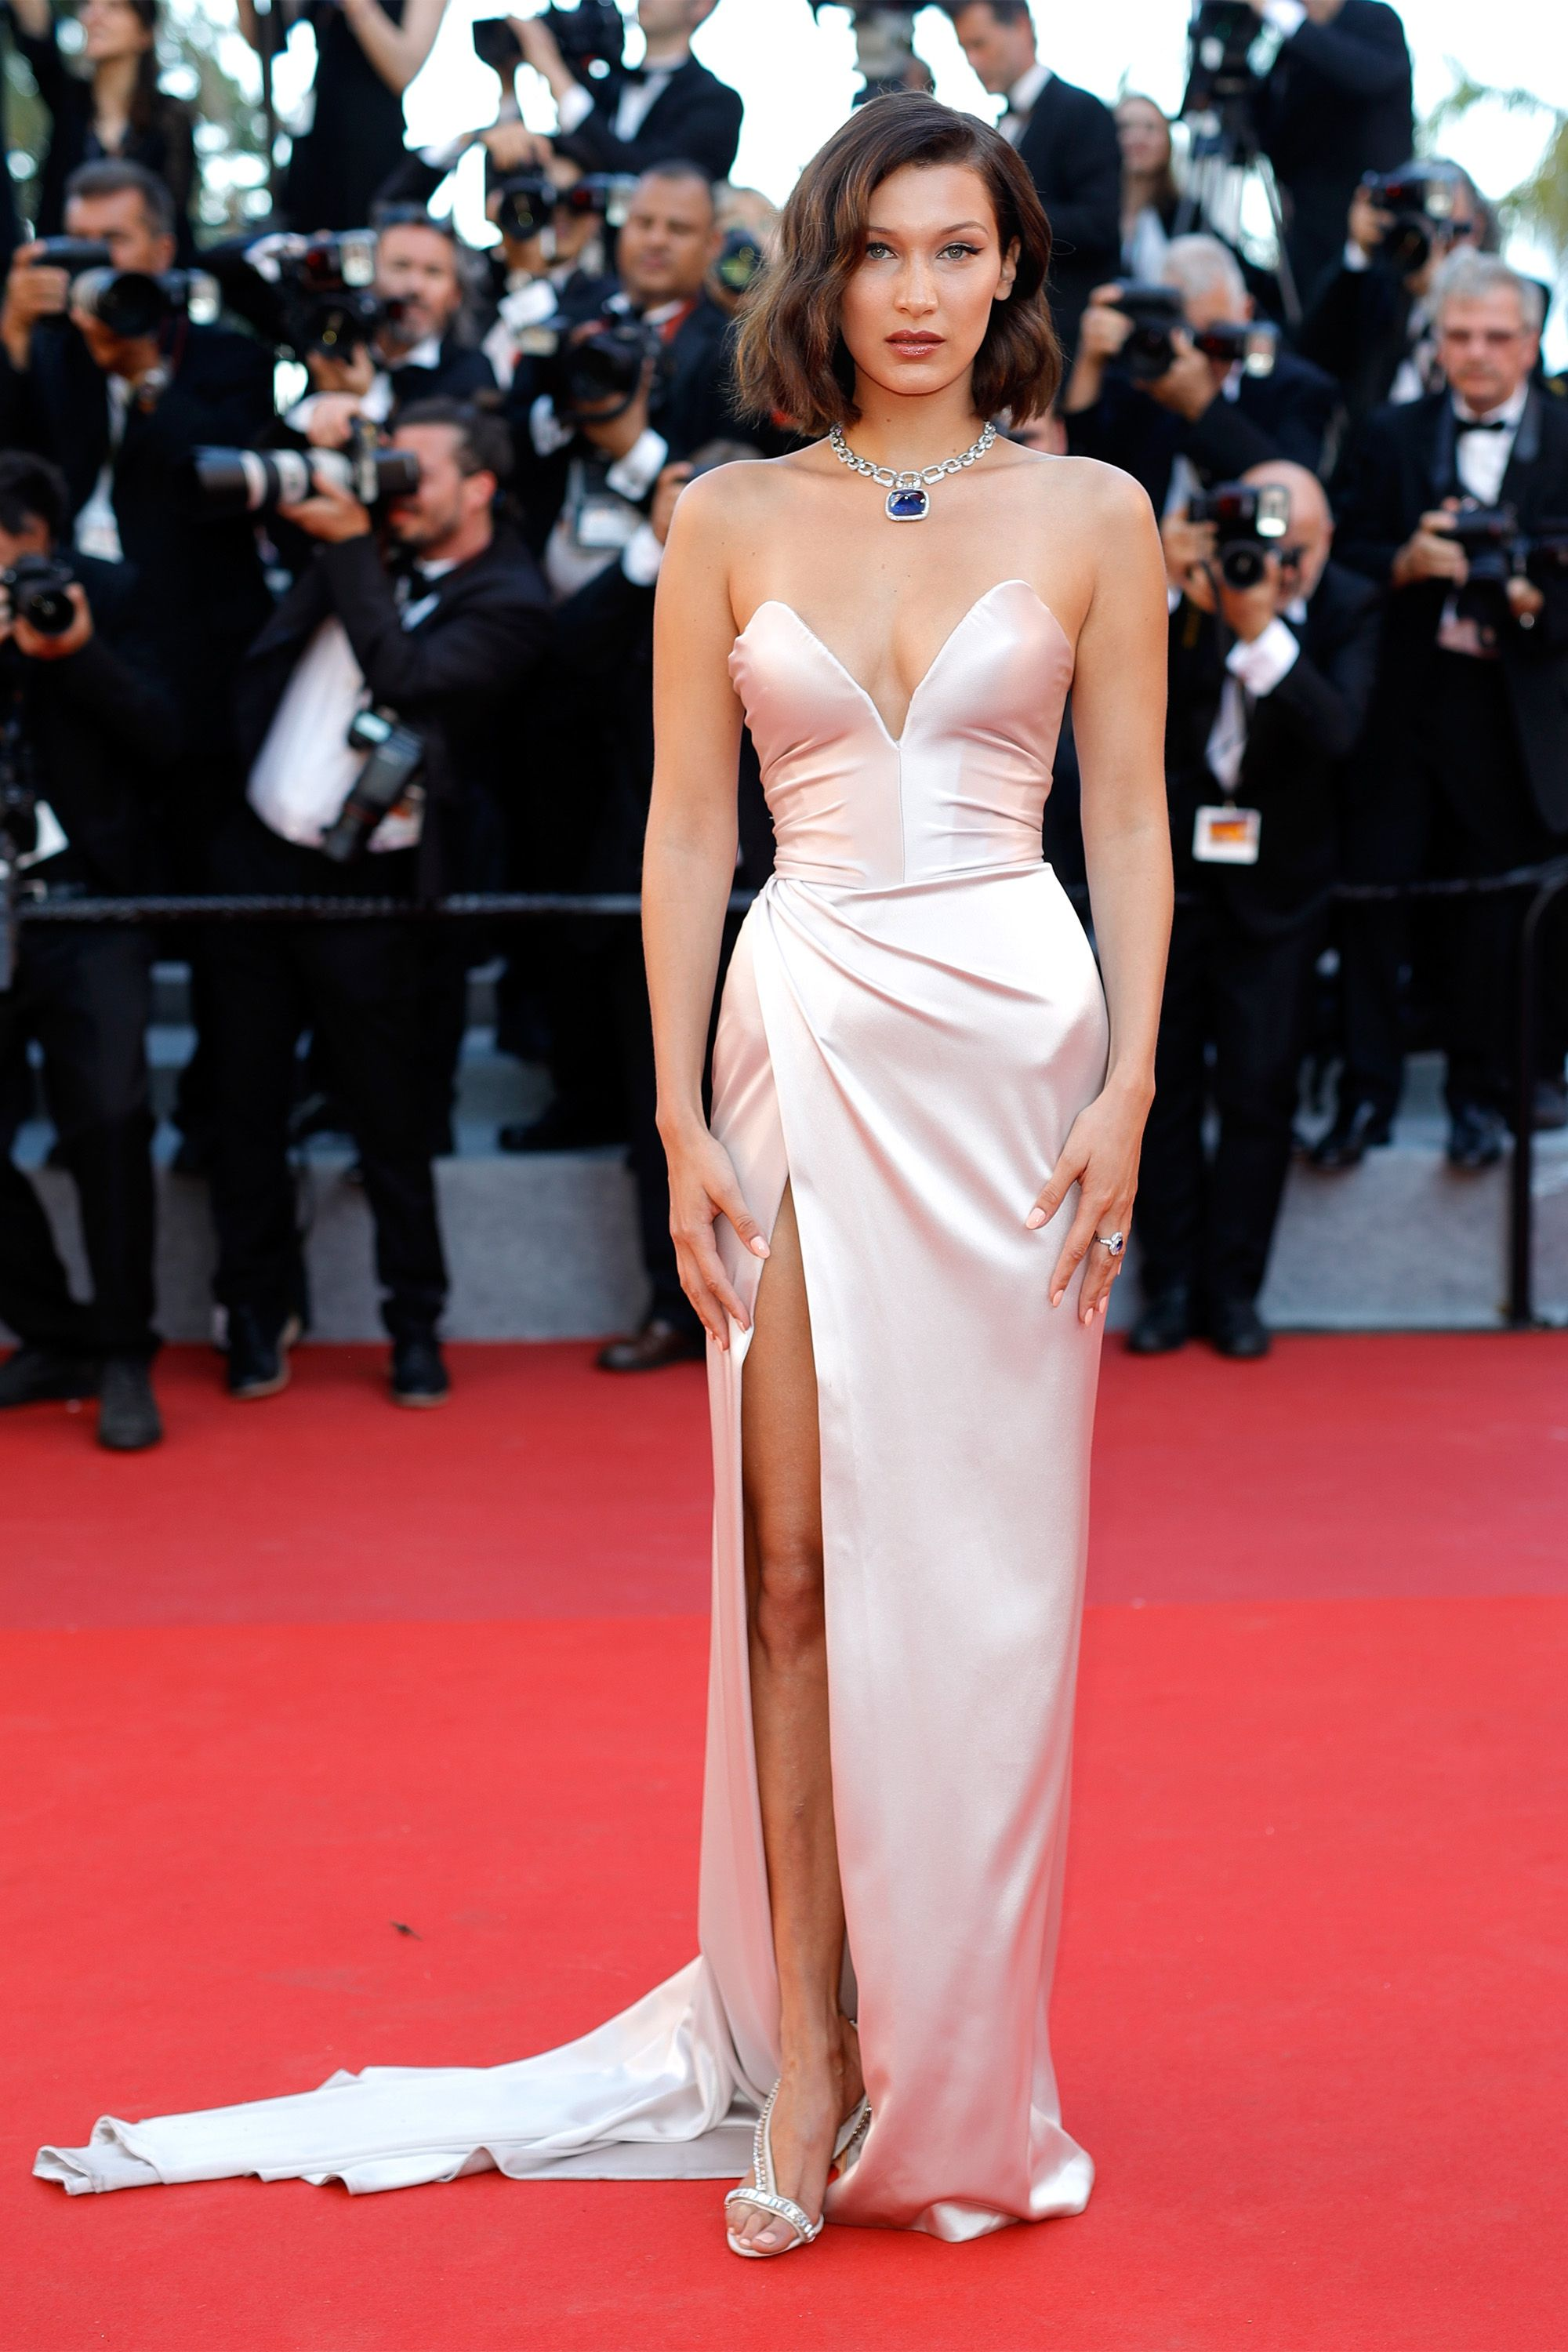 Abendkleid Roter Teppich Image Result For Bella Hadid Bulgaria White Dress Party